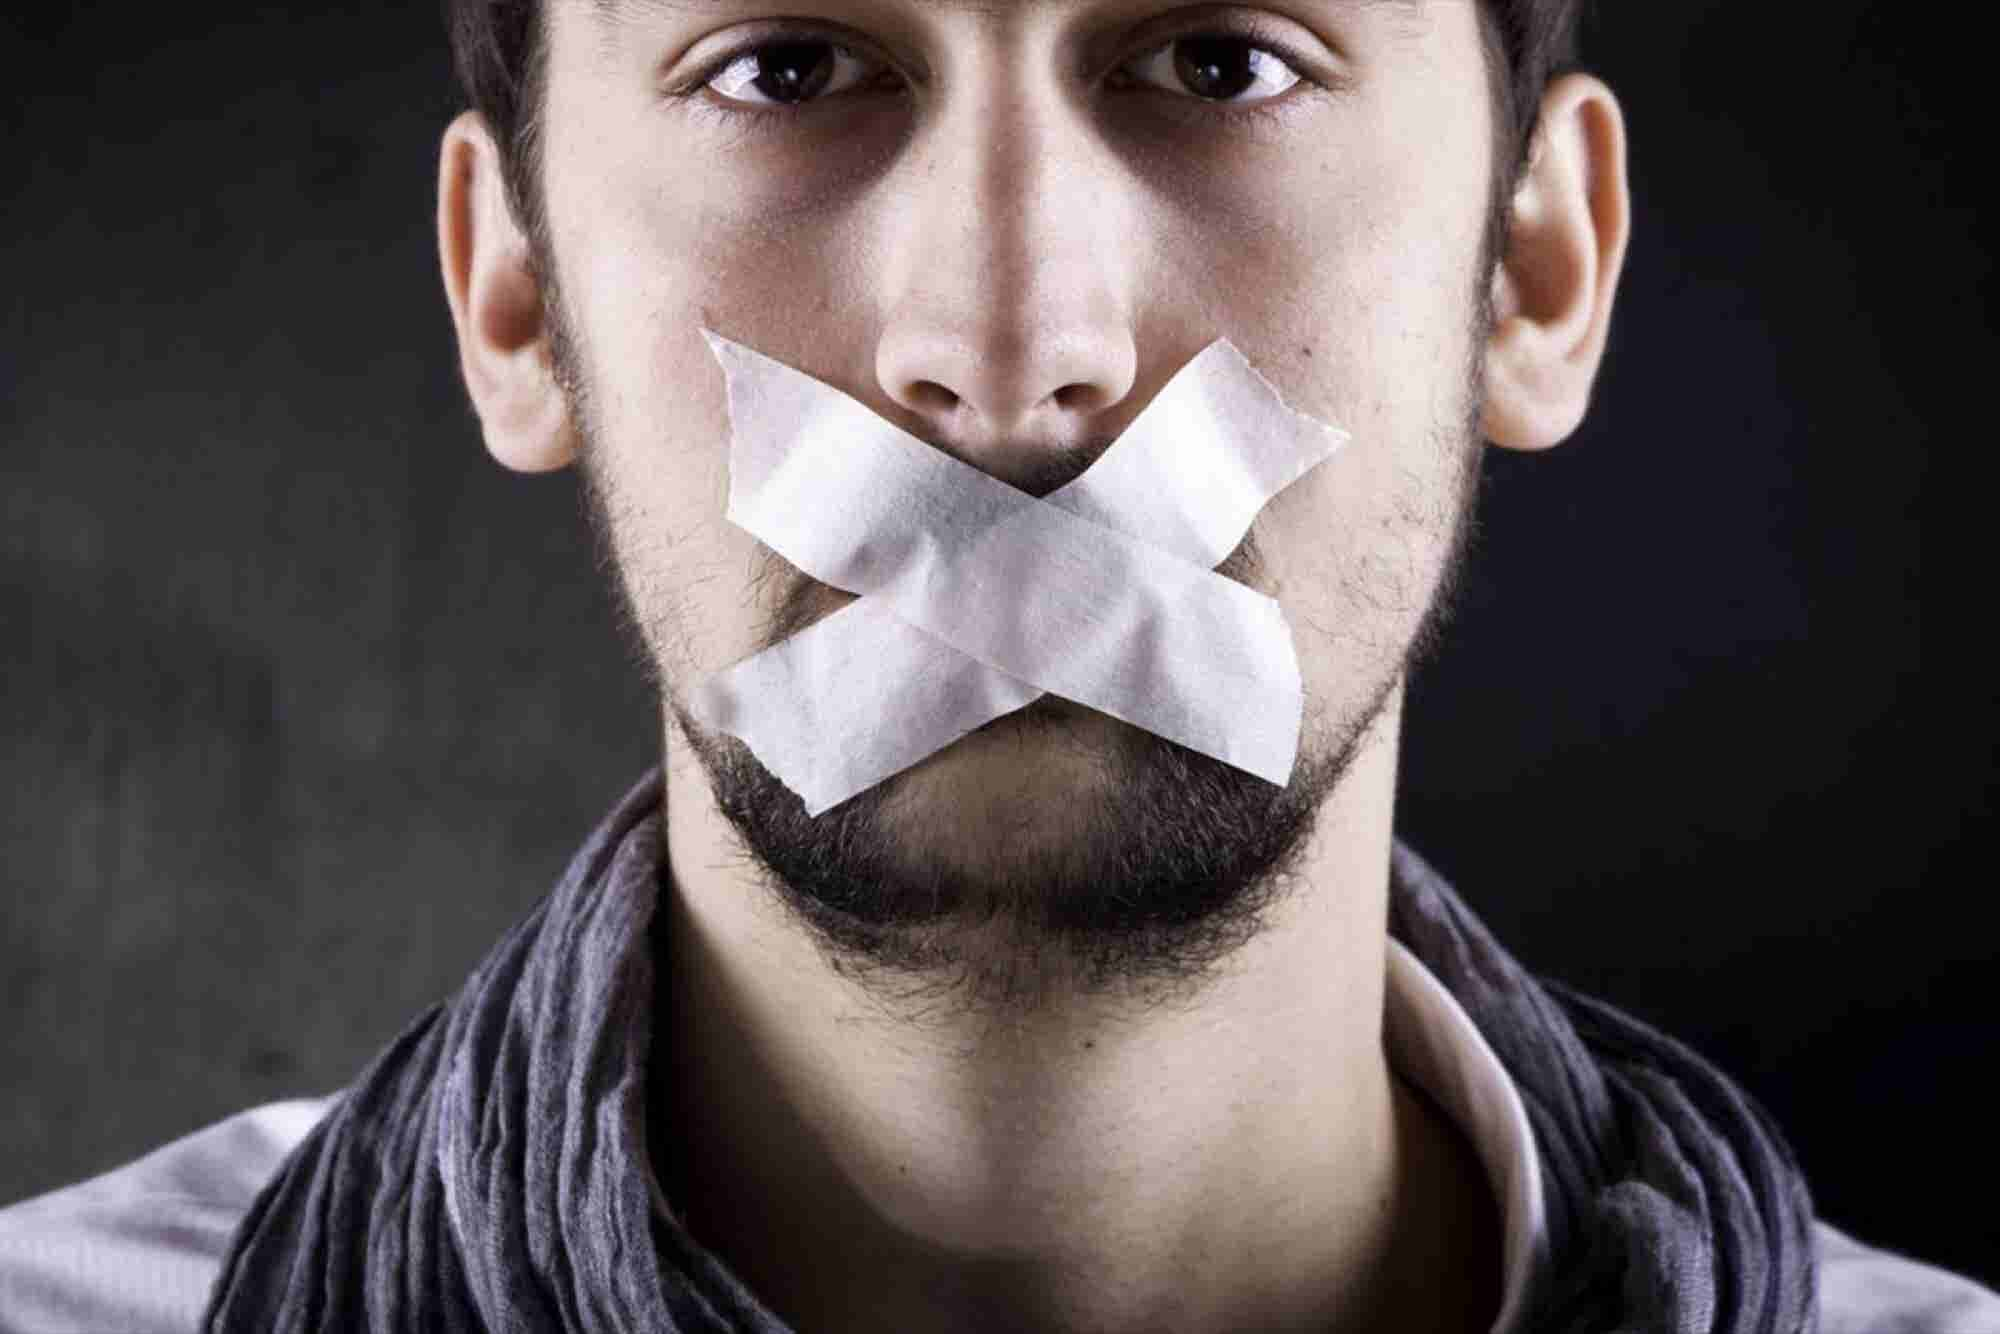 10 Reasons Why You Probably Don't Want to Speak to the News Media